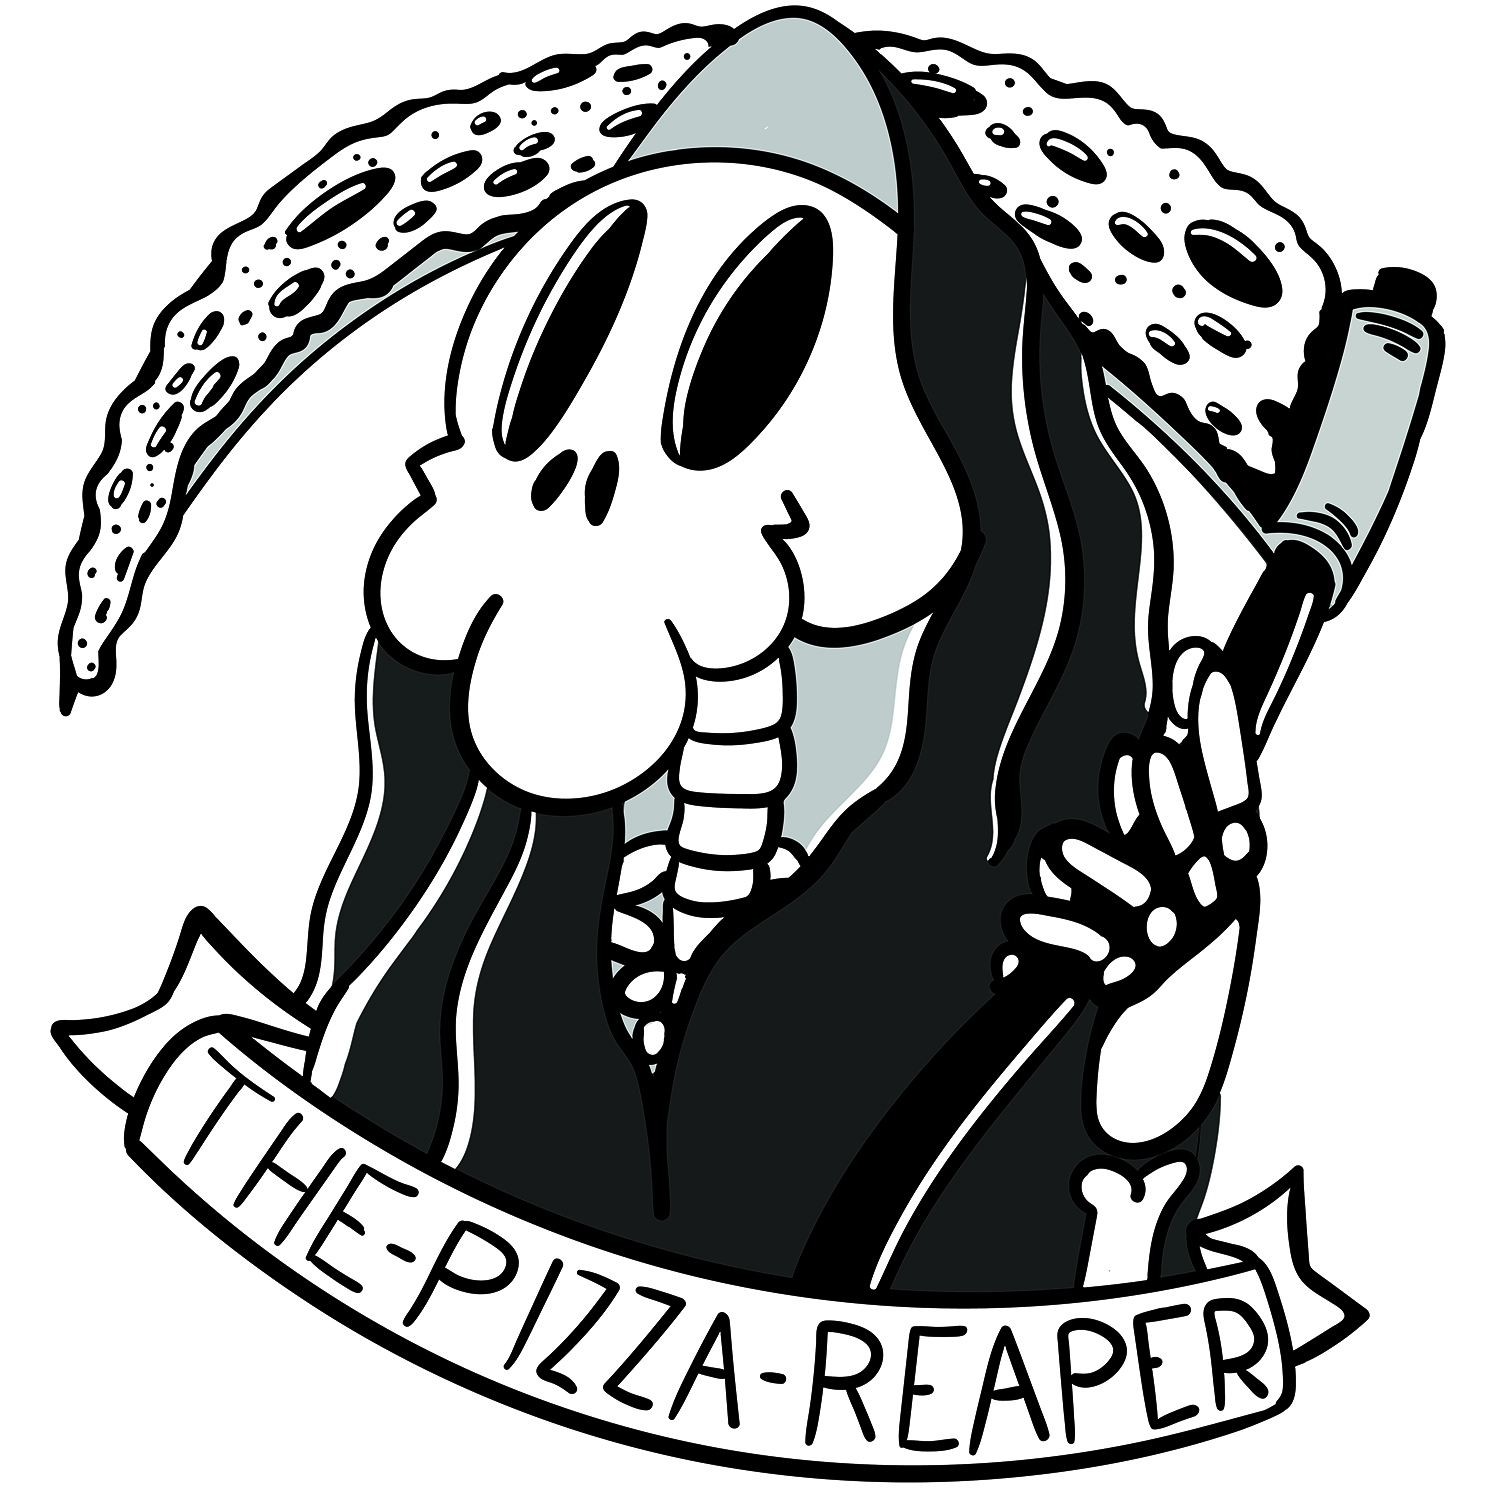 the pizza grim reaper